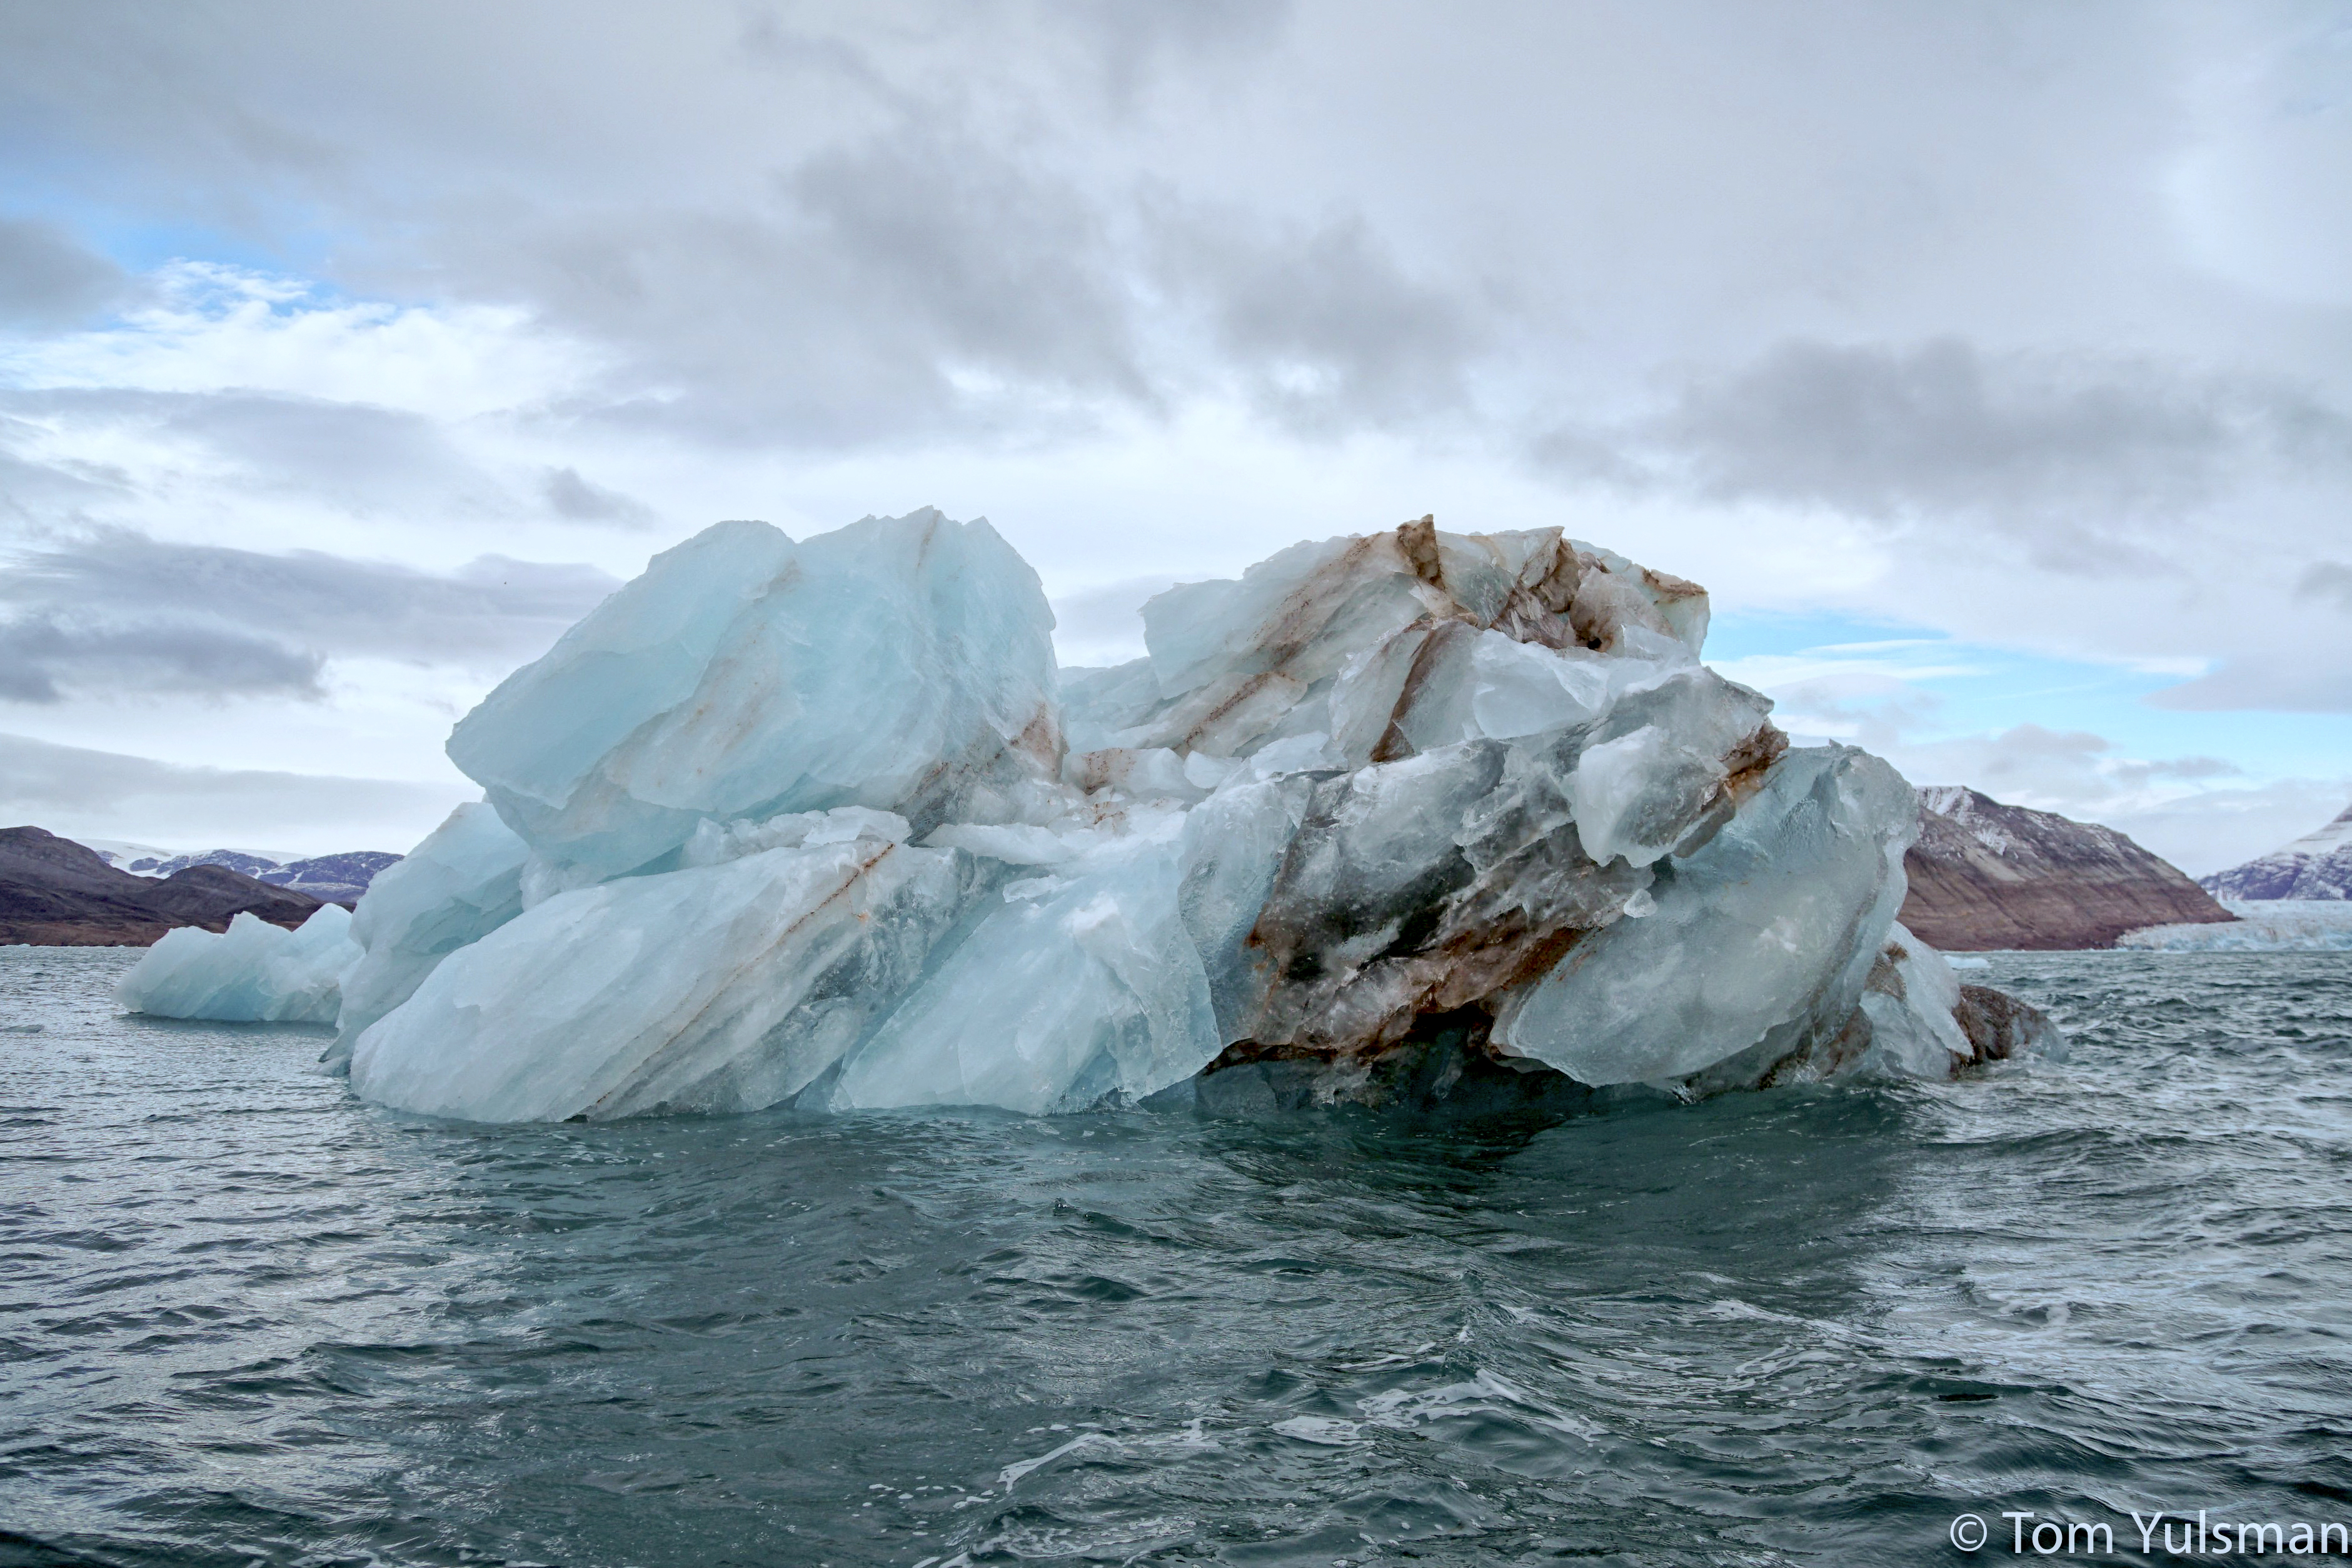 Glaciers doomed by global warming